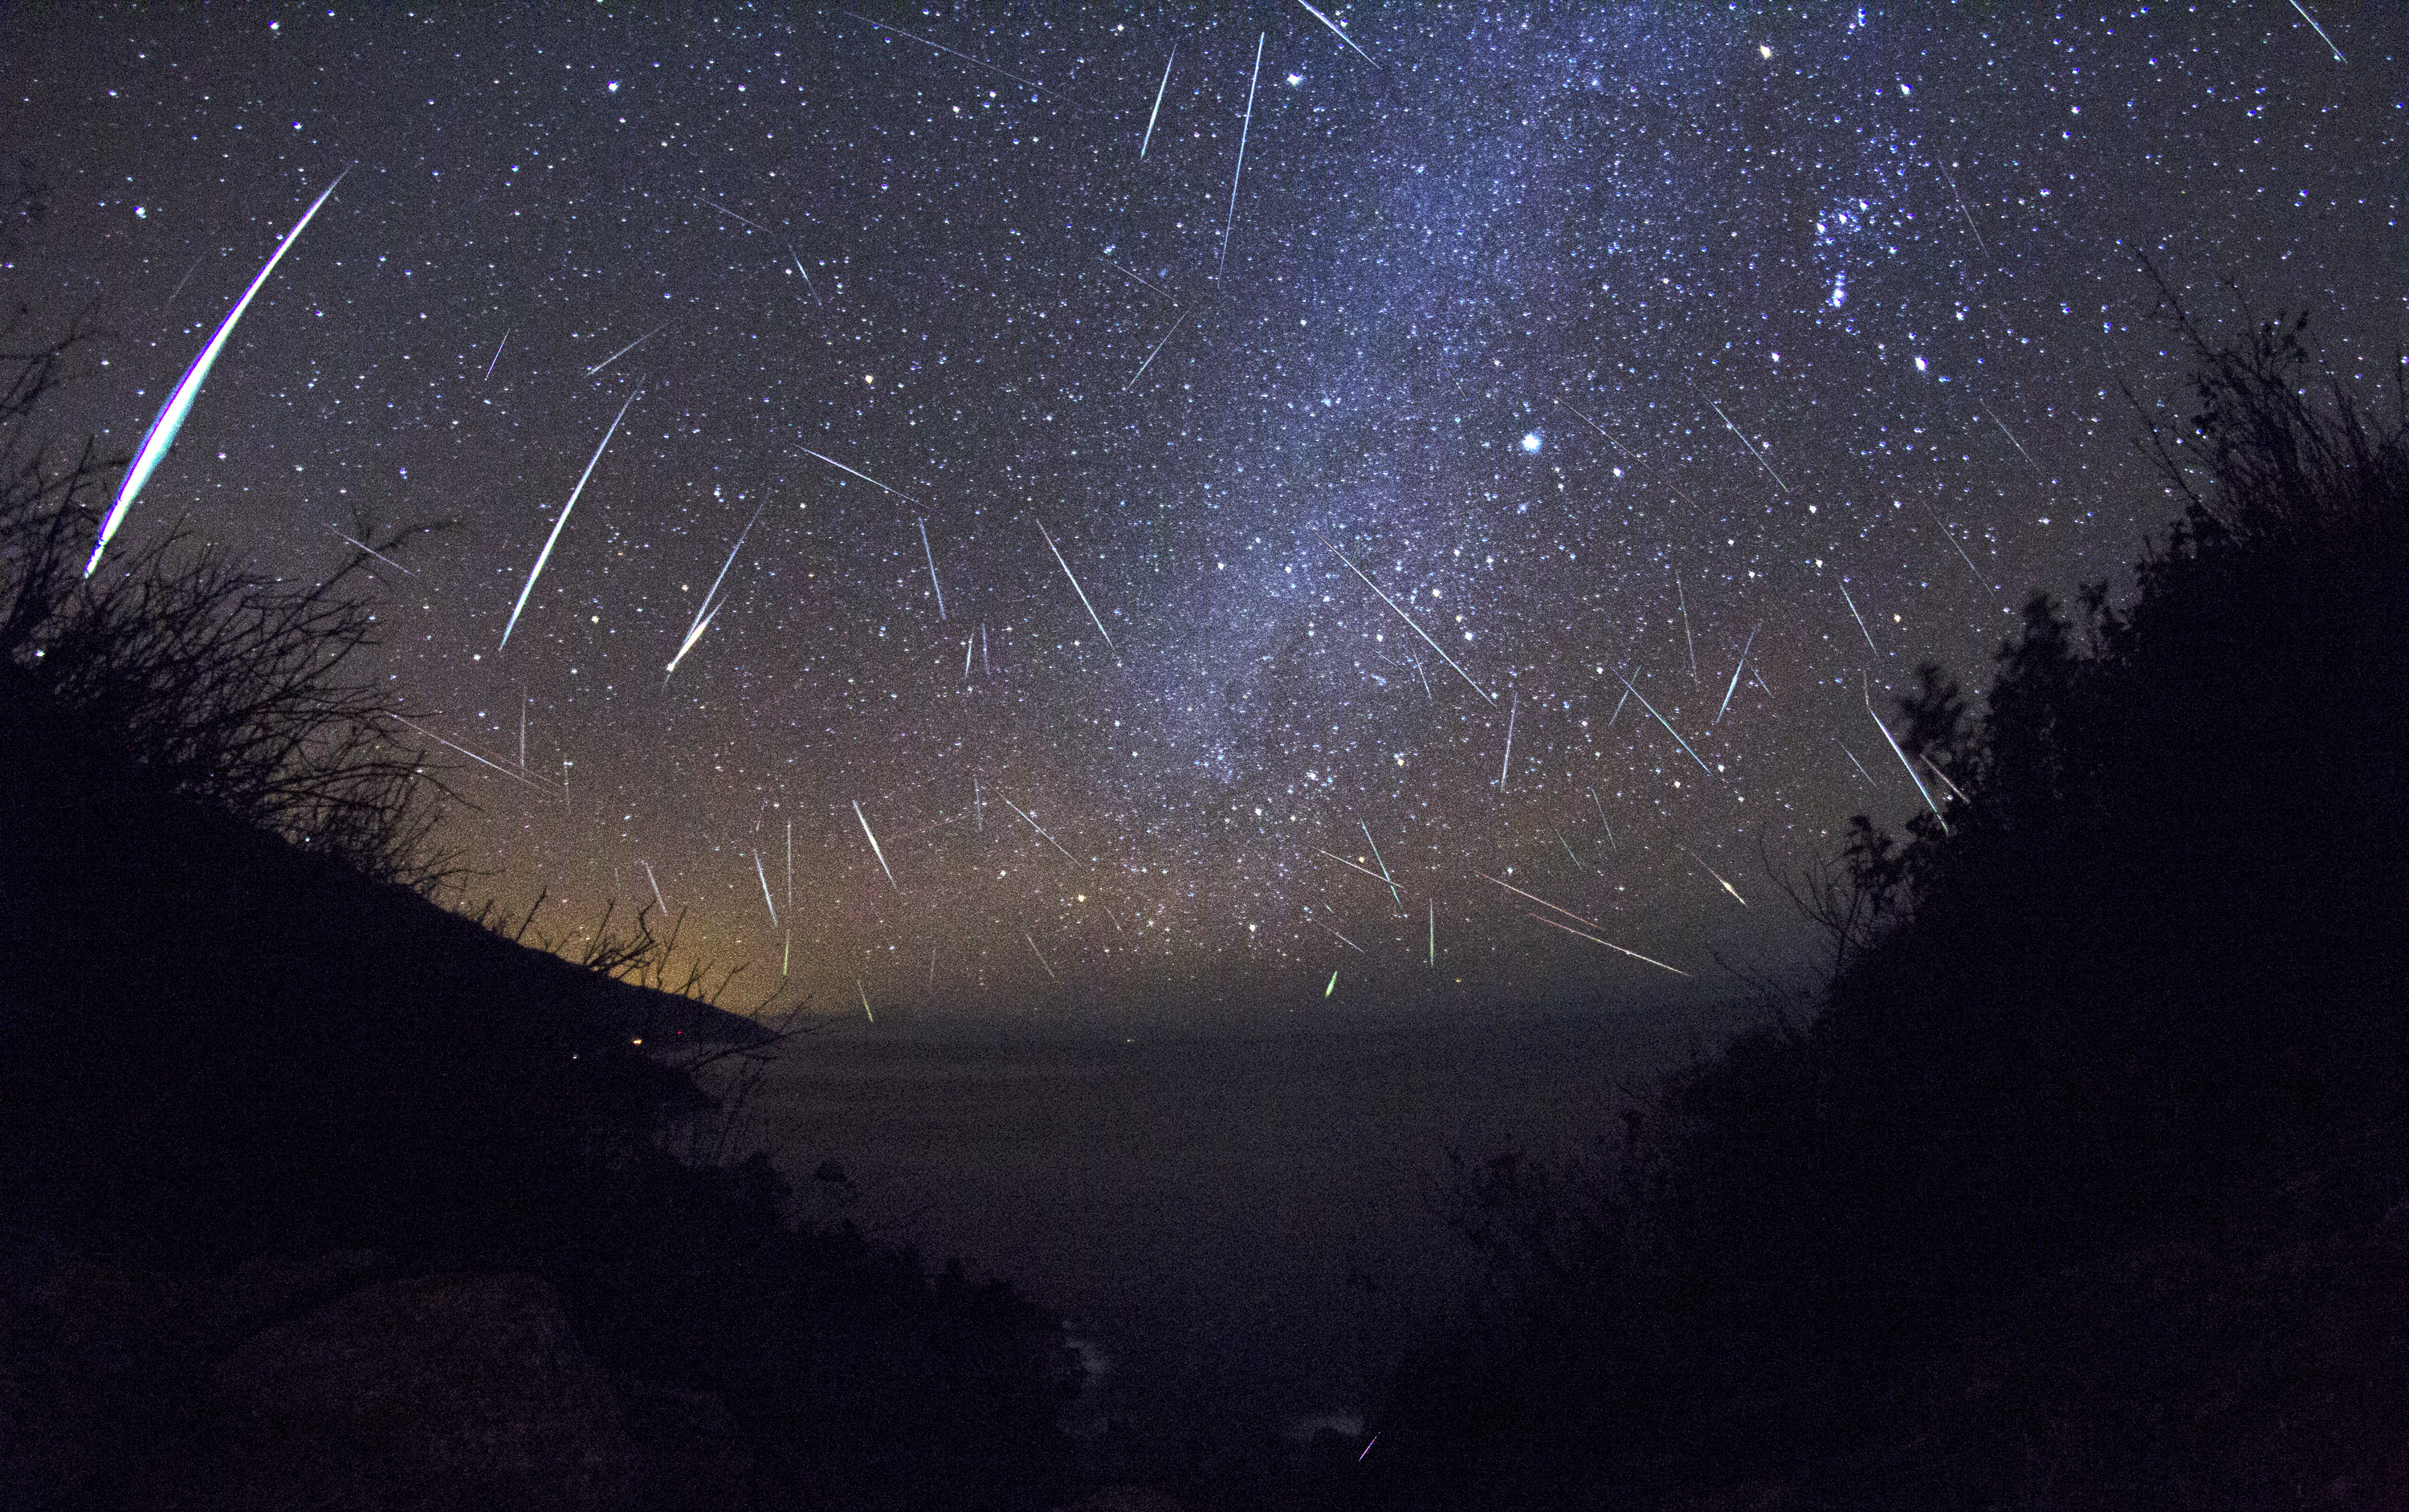 Geminides meteor shower visible in Balkans in the night of the 13th